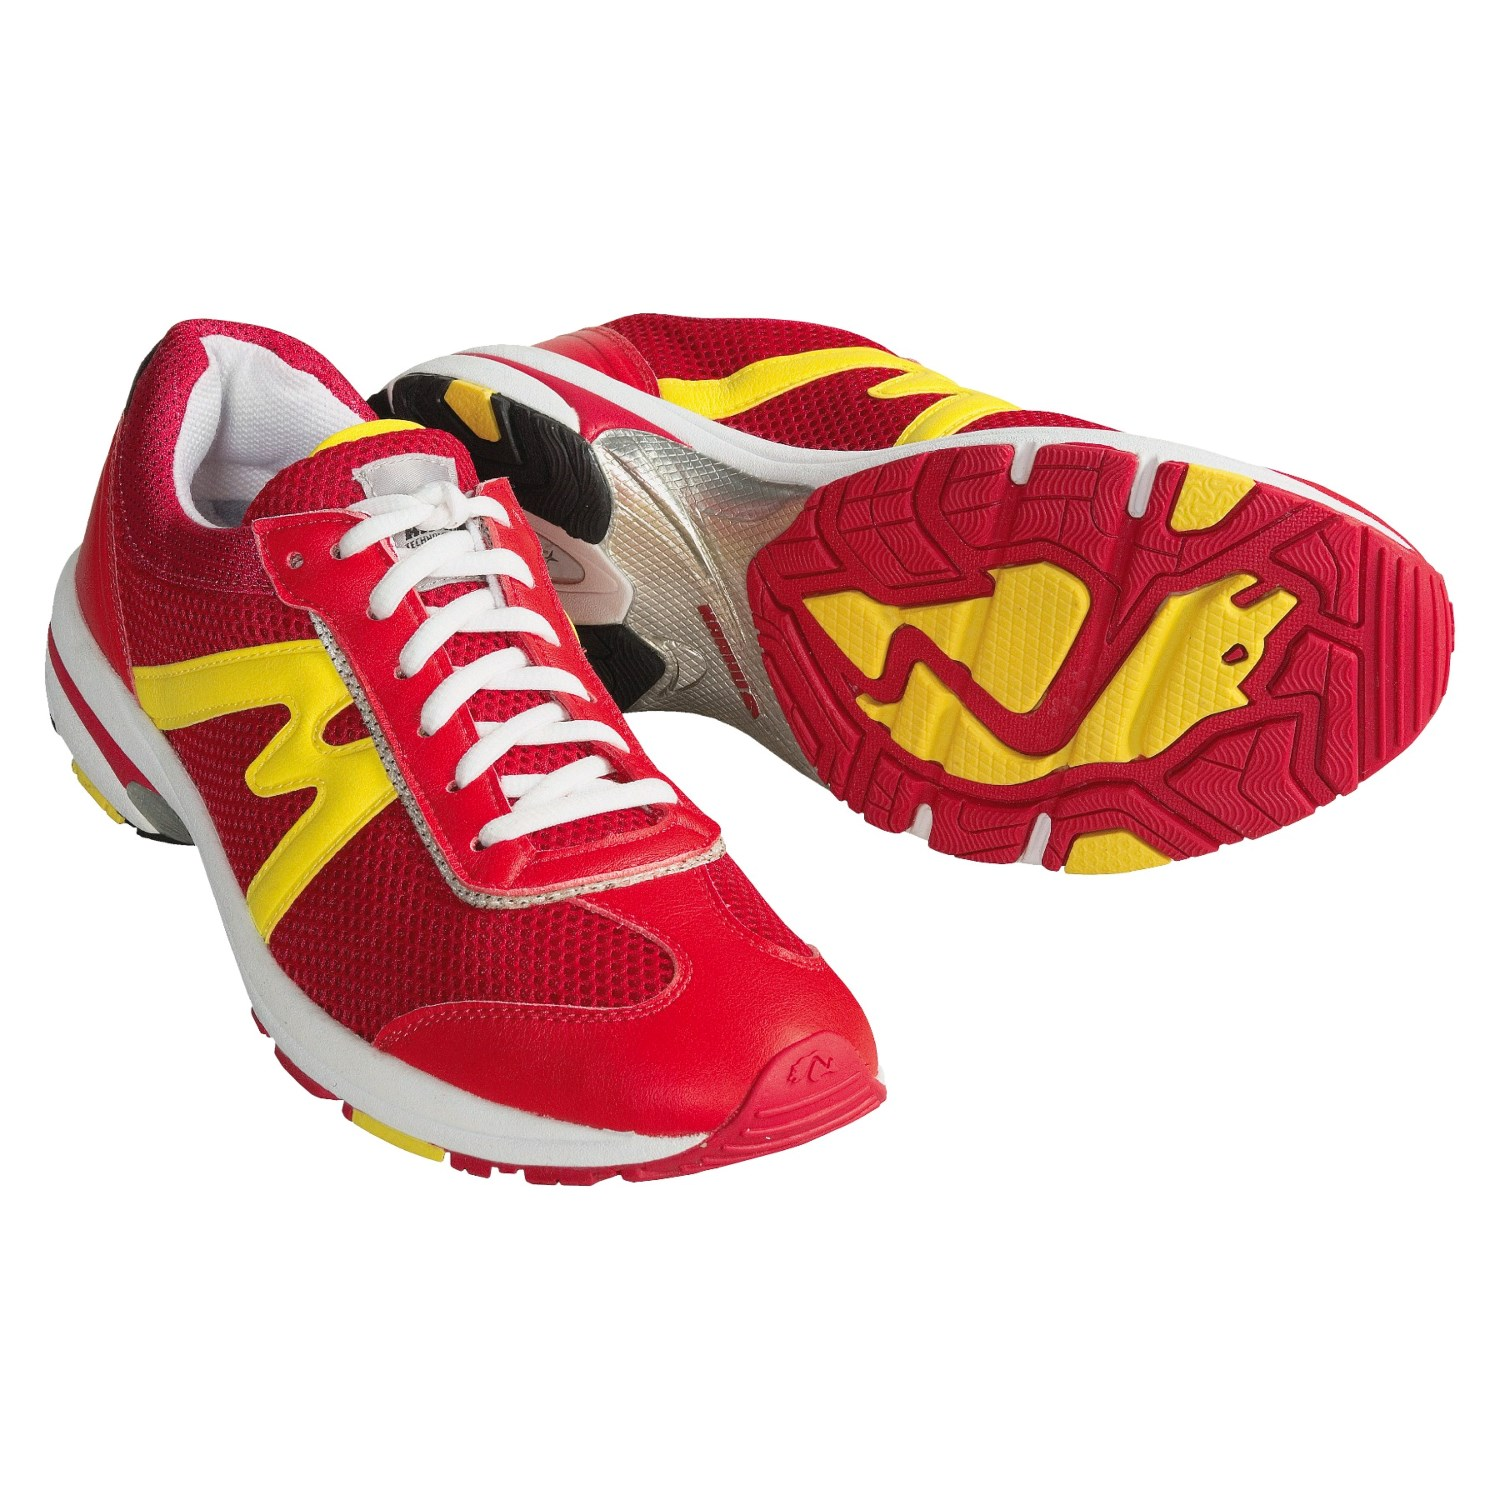 Karhu Triathlon Running Shoes